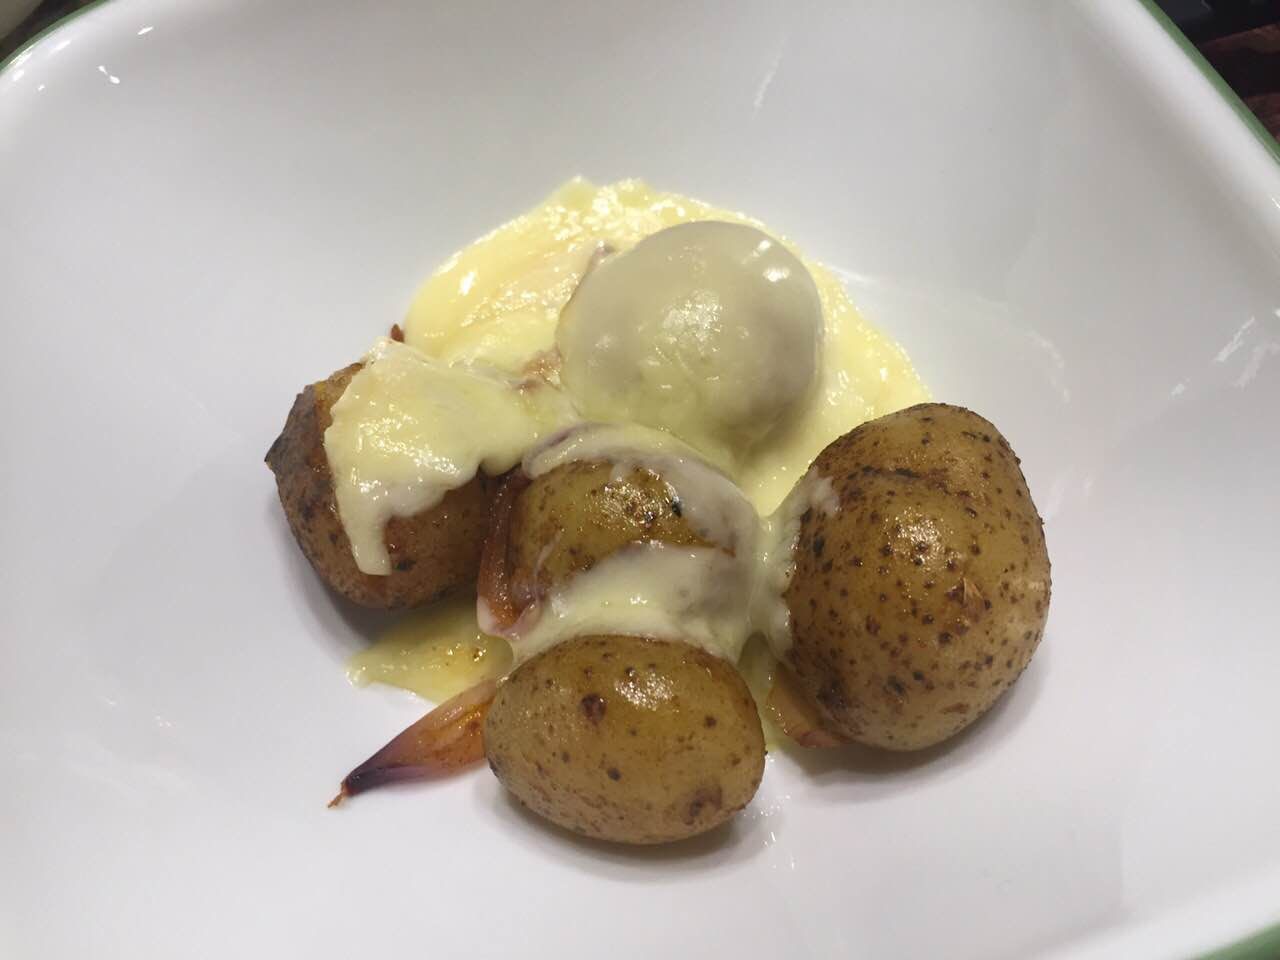 raclette and roasted potatoes